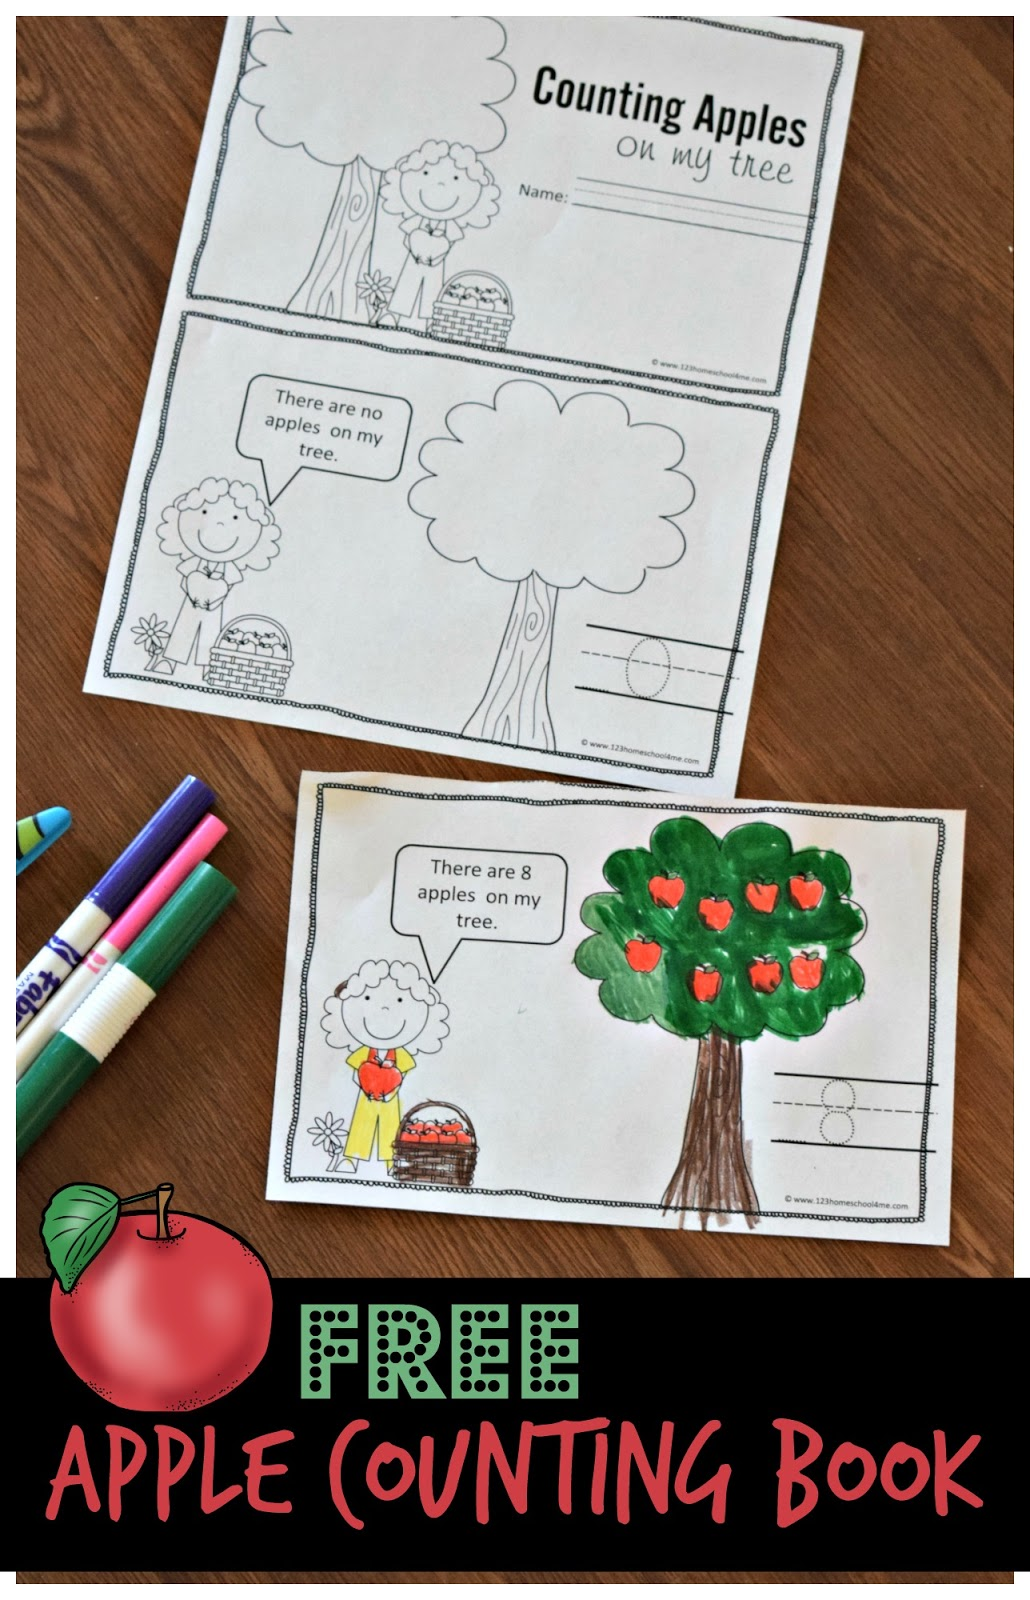 Counting Apples Mini Book